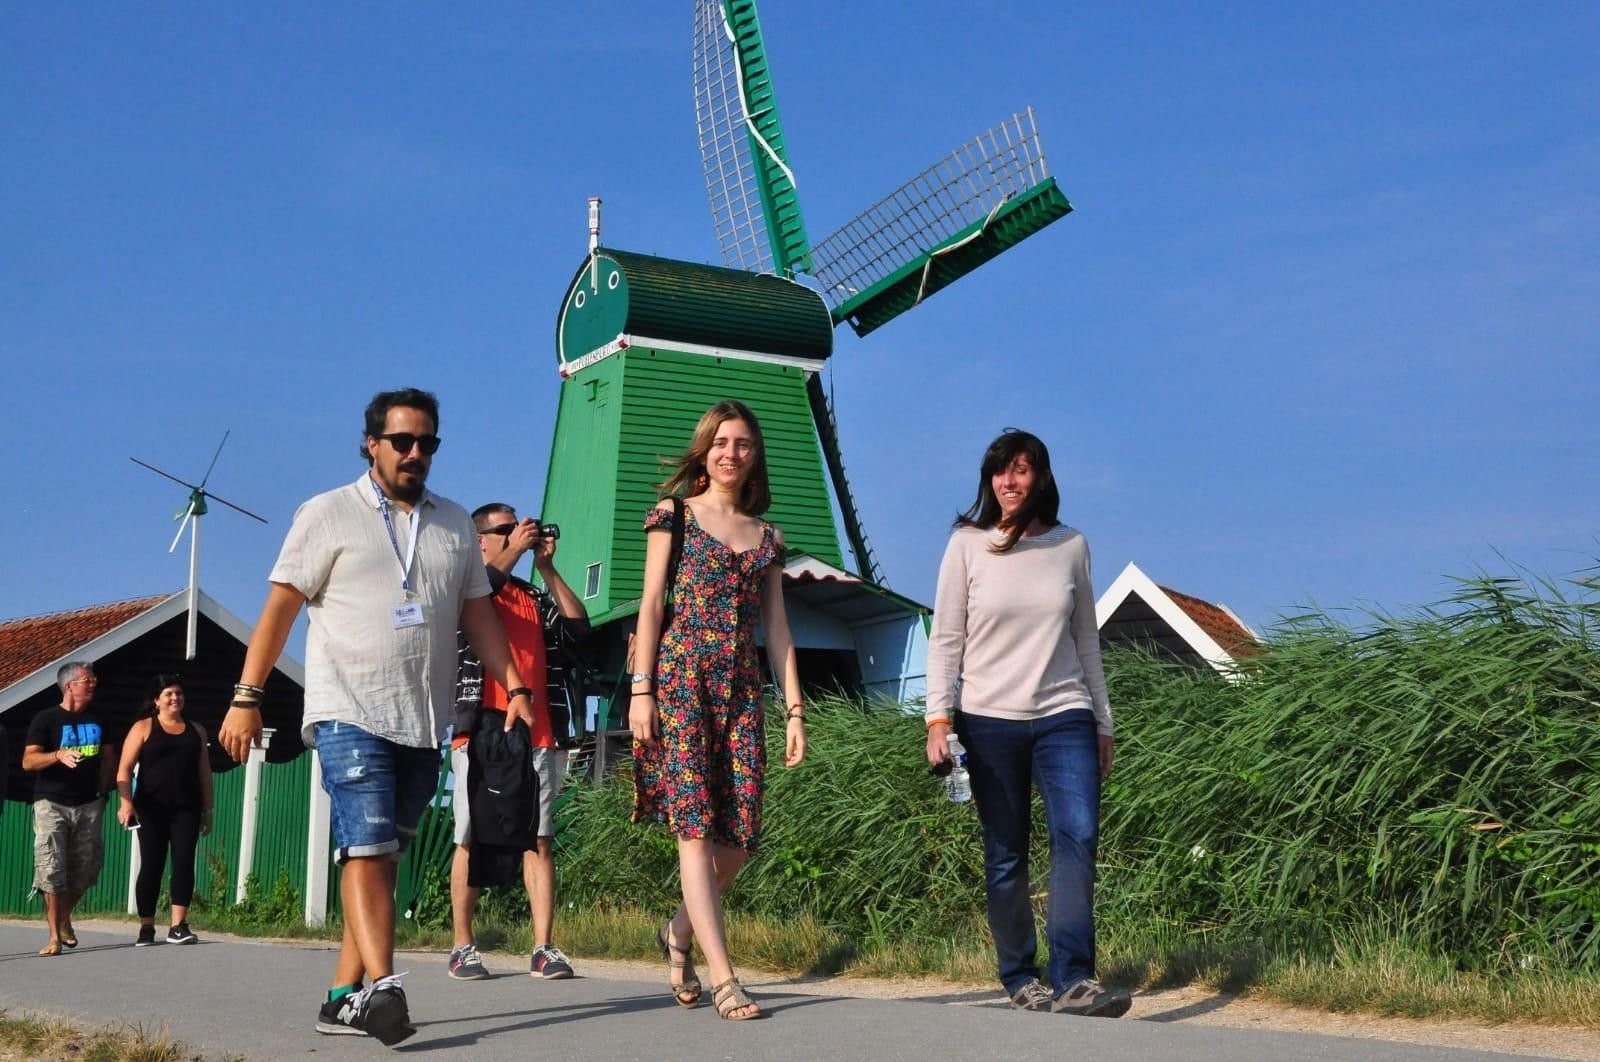 Group visiting the mills in Amsterdam